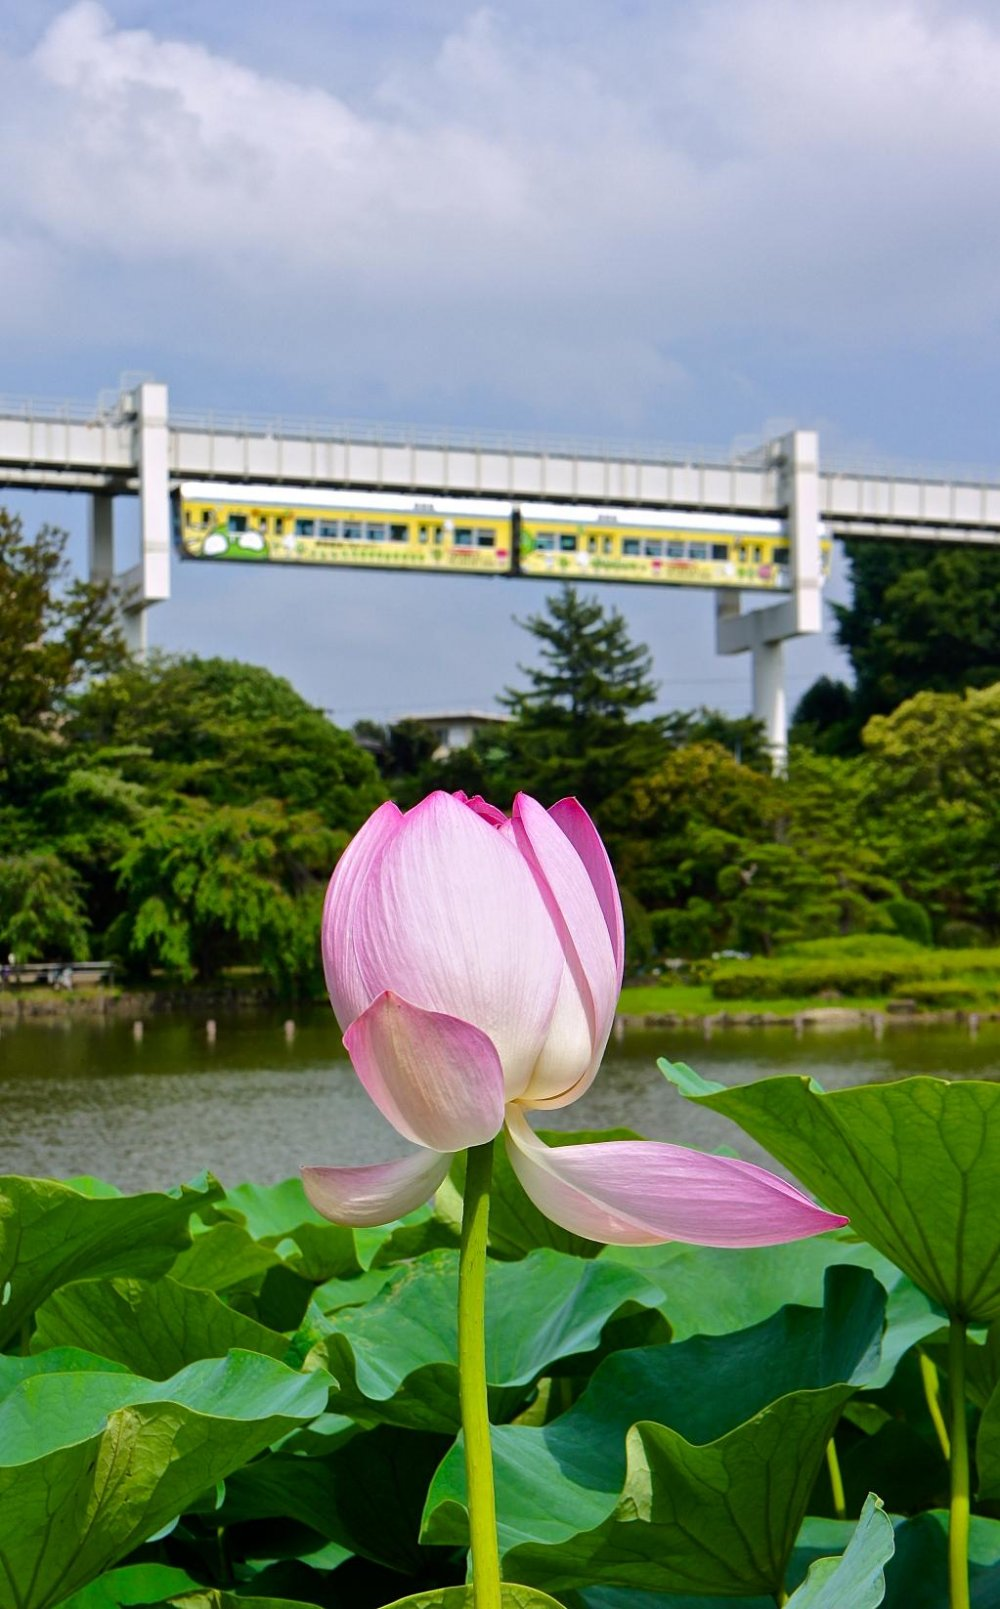 Lotus flowers at chiba koen chiba japan travel japan tourism lotus flowers on backdrop of a passing monorail izmirmasajfo